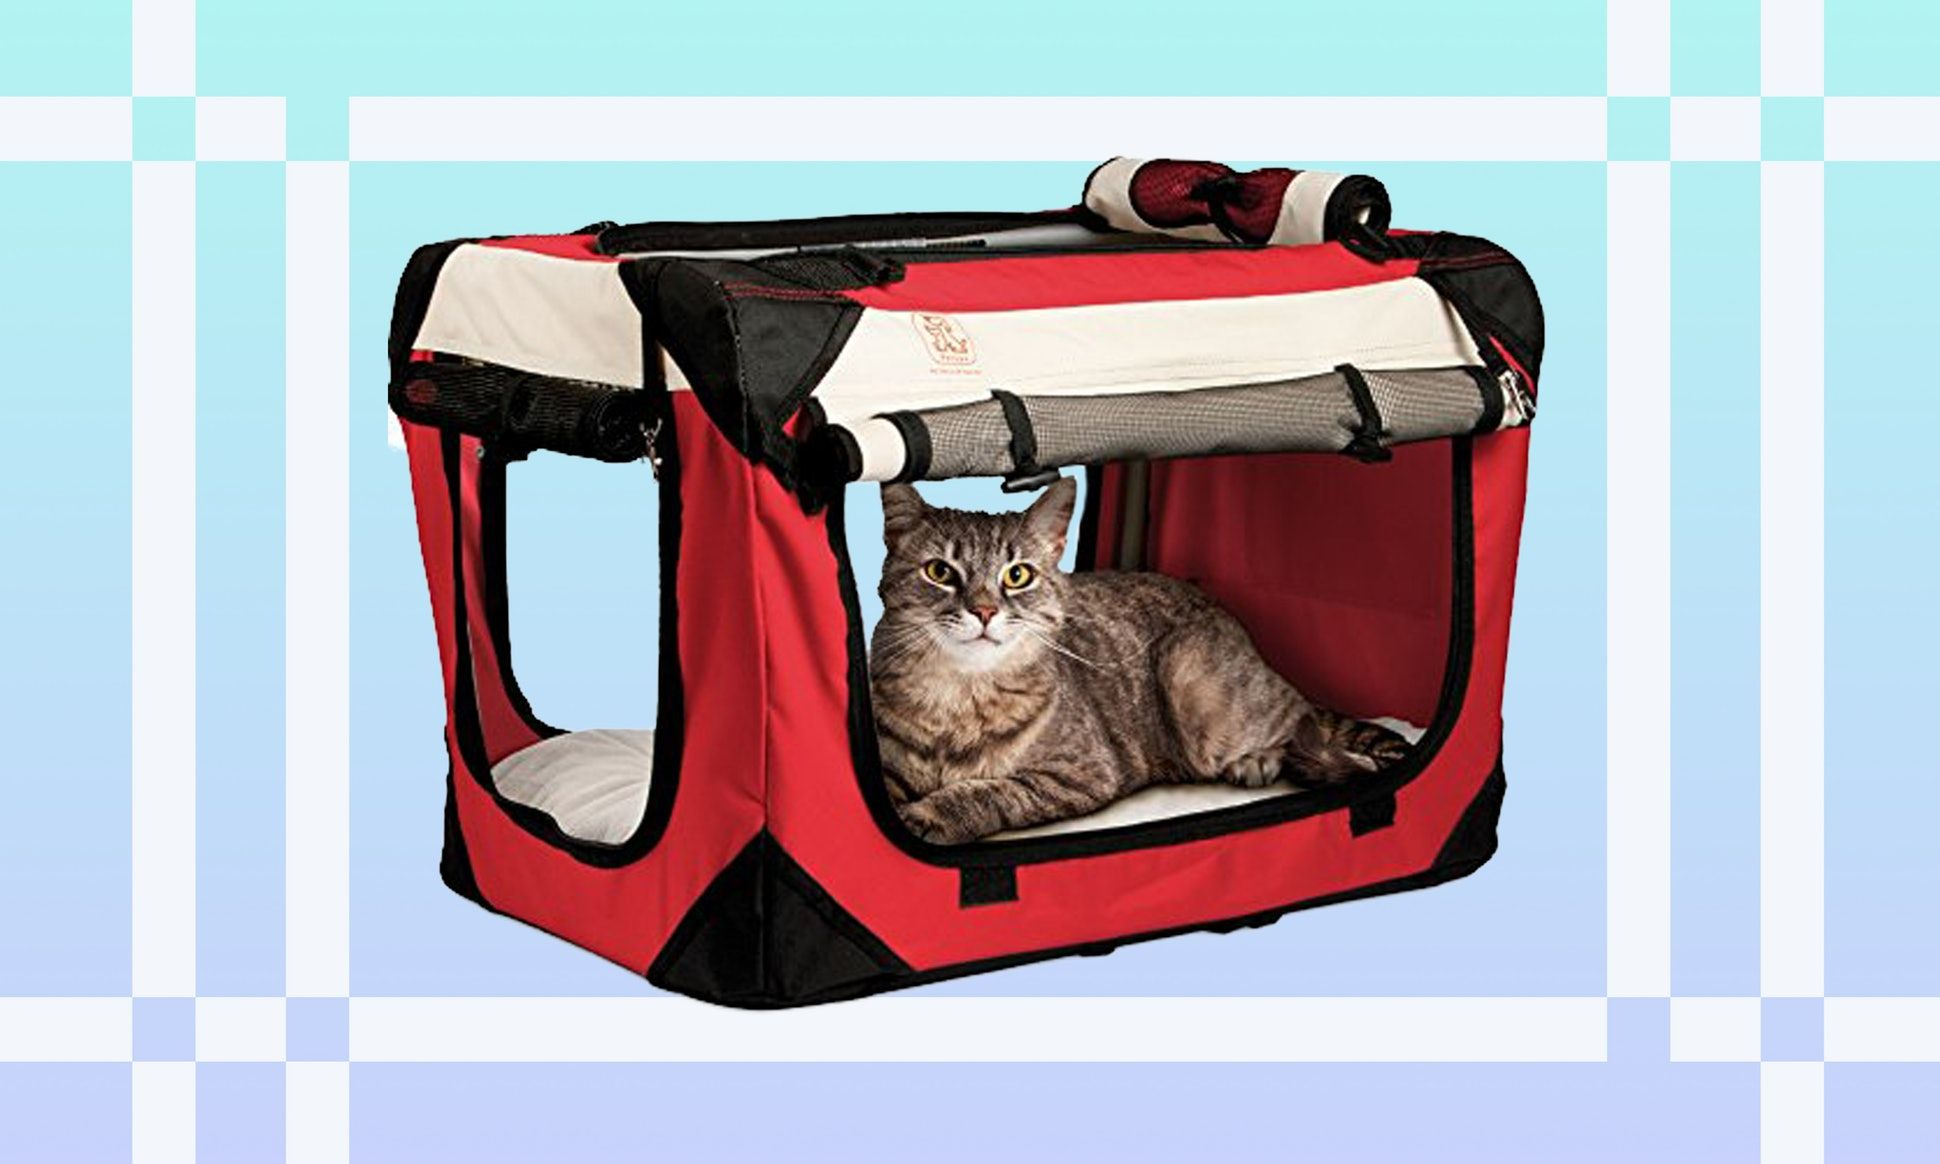 These Cat Carriers Fit Purrfectly In Cars, So You & Your